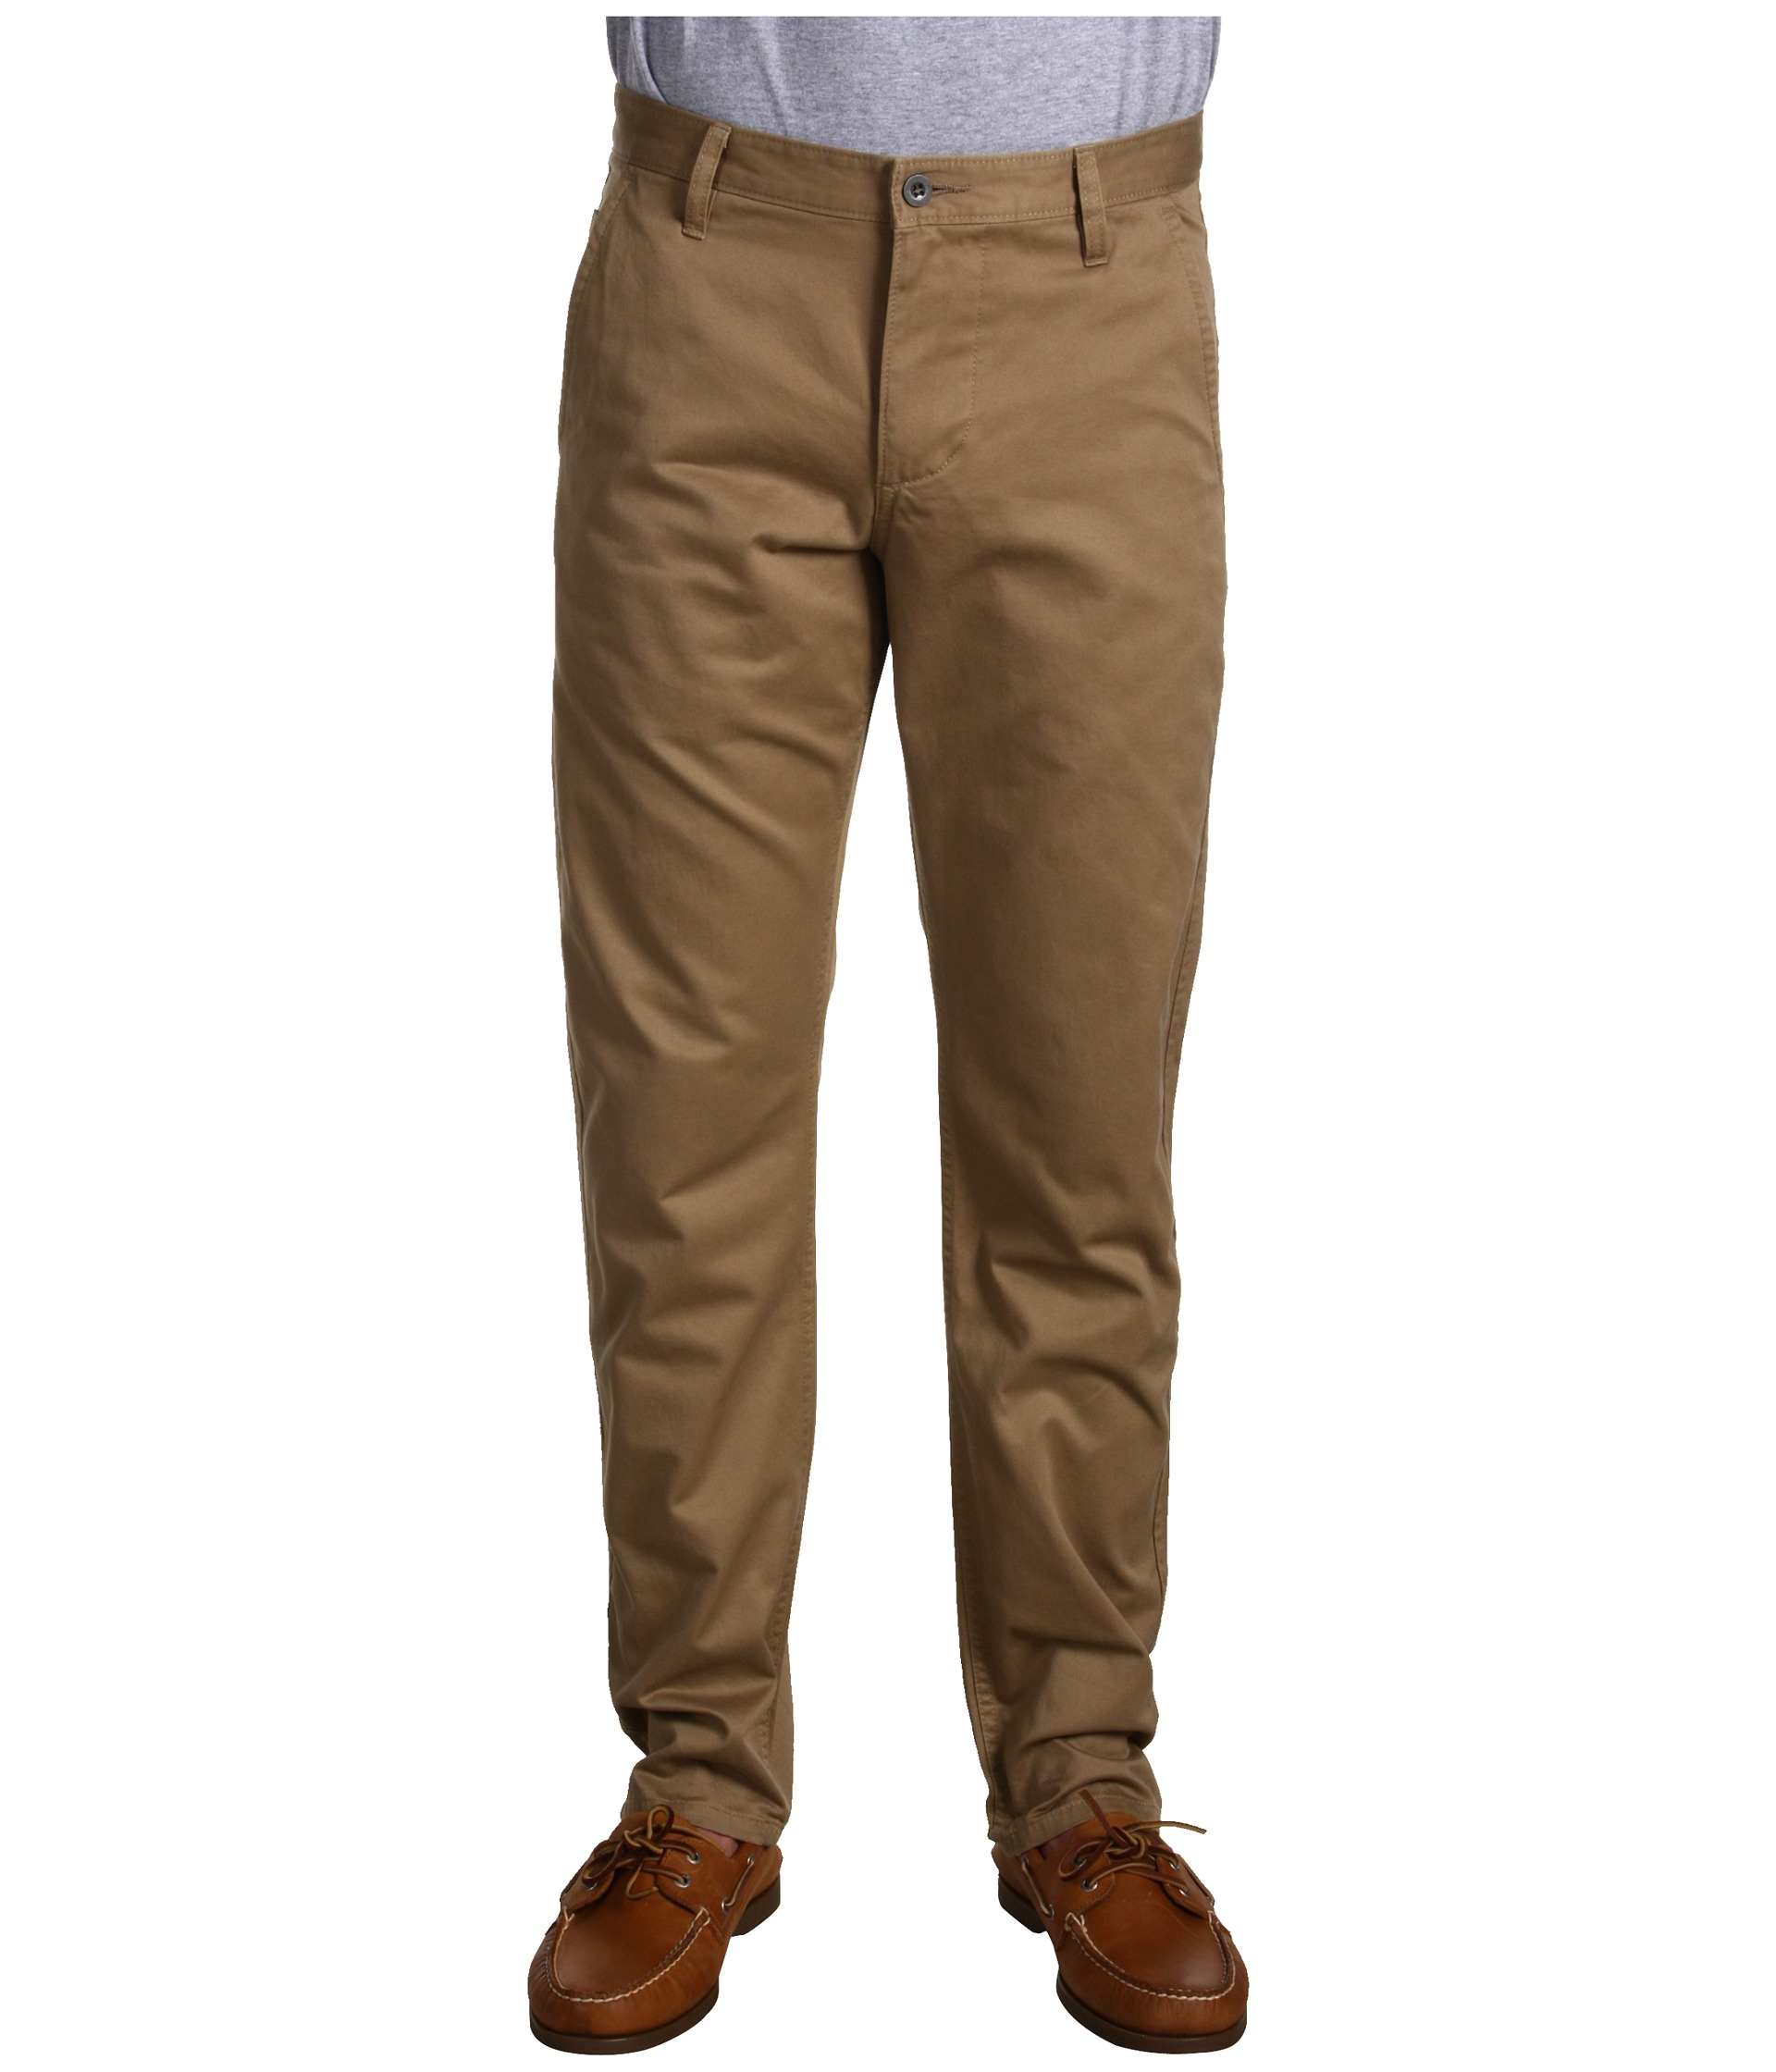 noun, plural khak·is. dull yellowish brown. a stout, twilled cotton cloth of this color, used especially in making uniforms. Usually khakis. (used with a plural verb)a uniform made of this cloth, especially a .